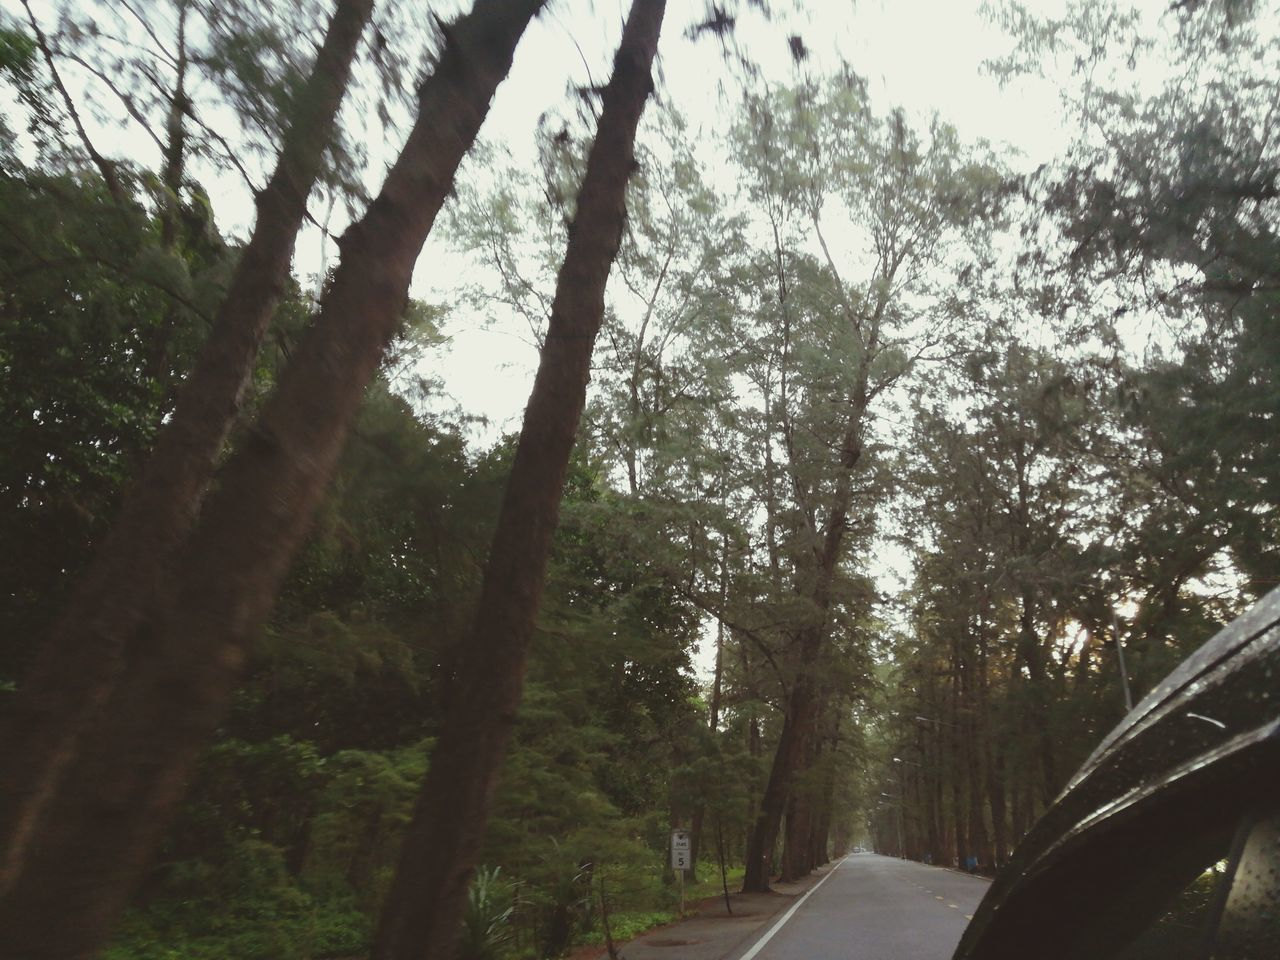 tree, car, transportation, road, nature, day, no people, forest, growth, outdoors, branch, scenics, beauty in nature, sky